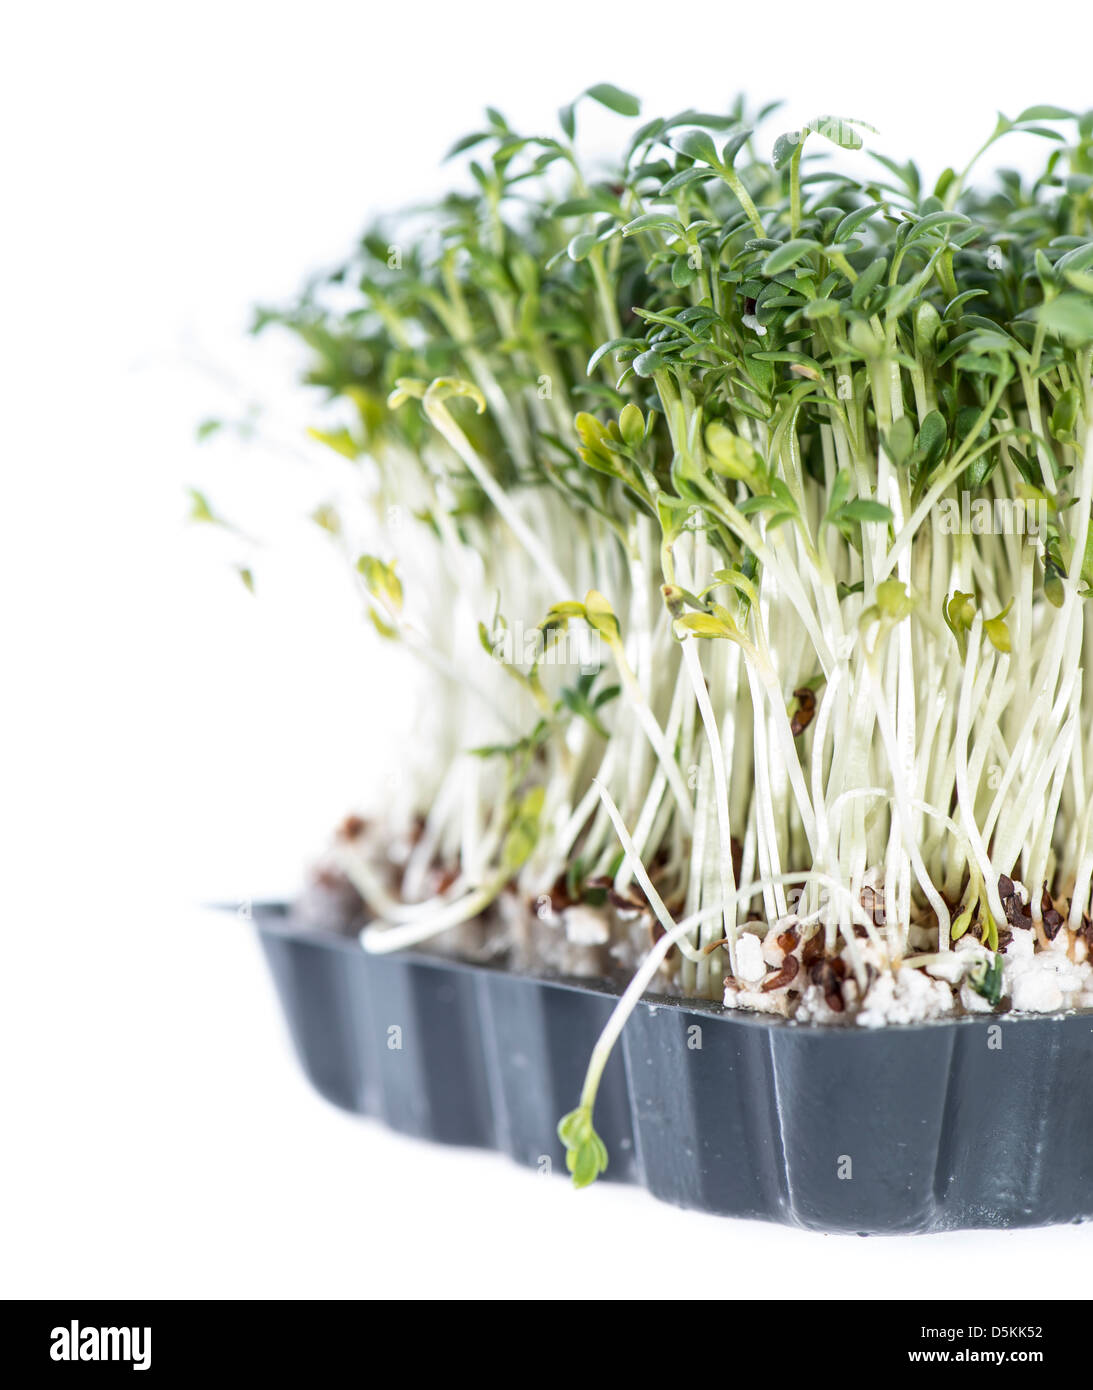 Cress isolated on white background - Stock Image